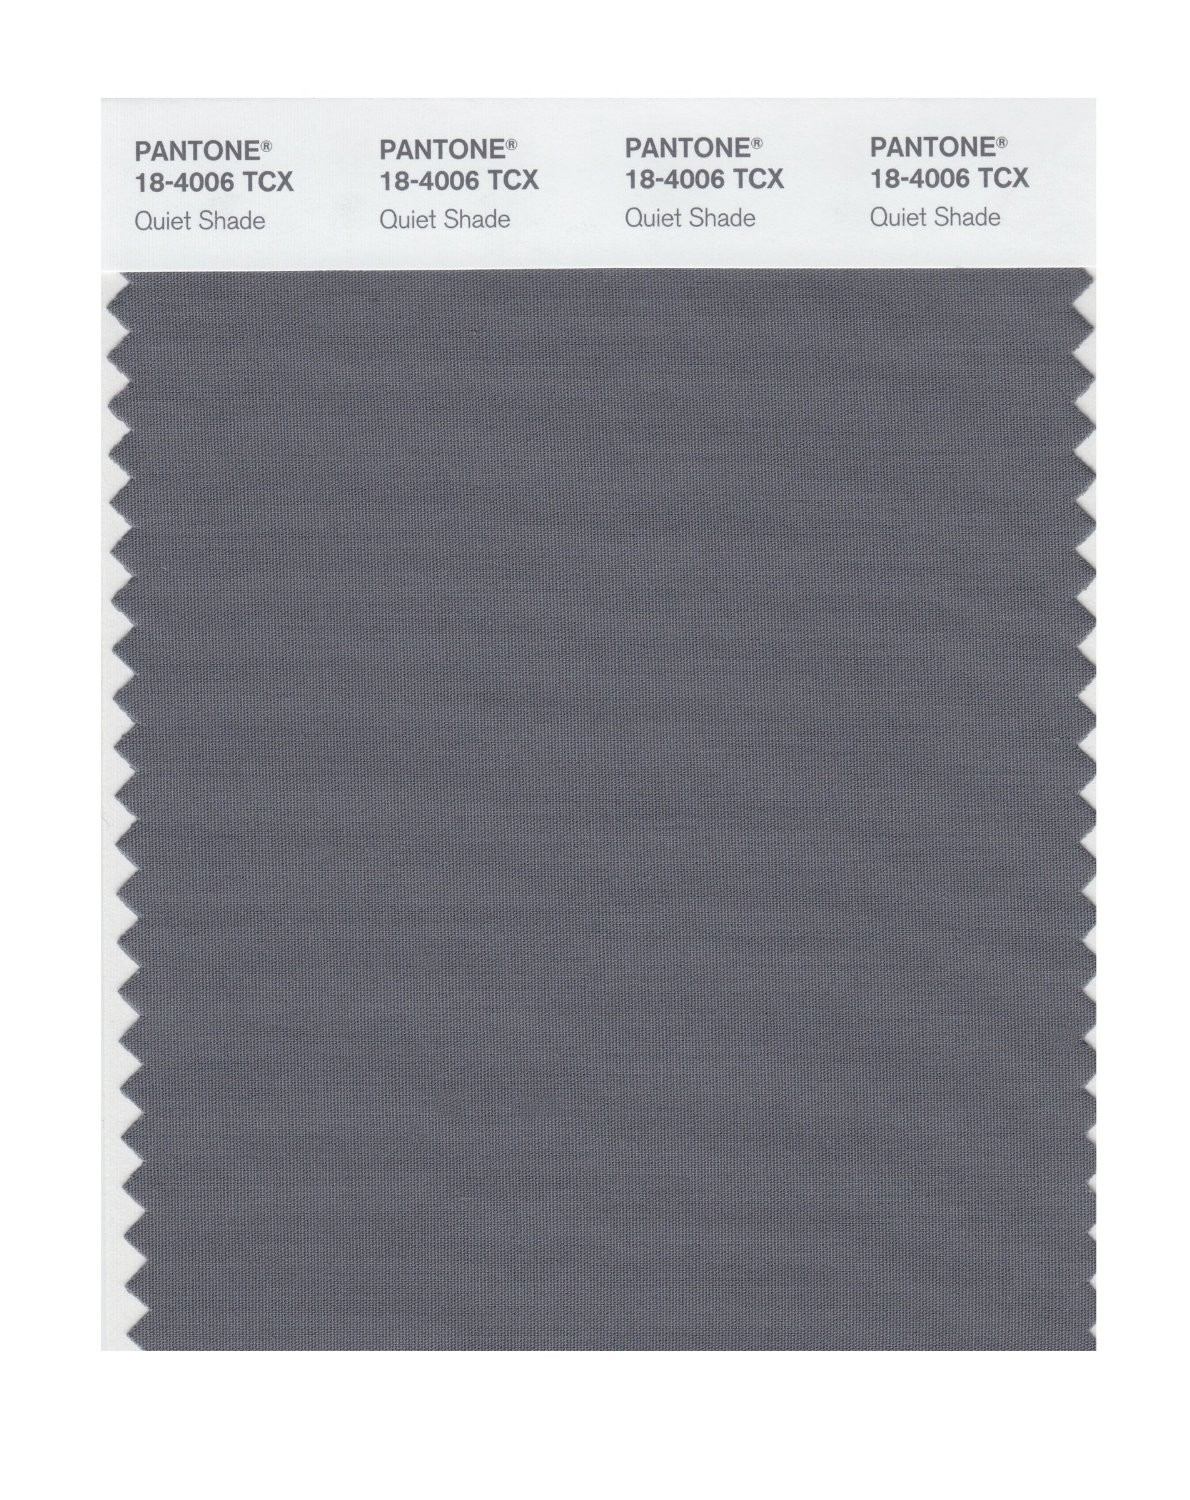 Pantone 18-4006 TCX Swatch Card Quiet Shade